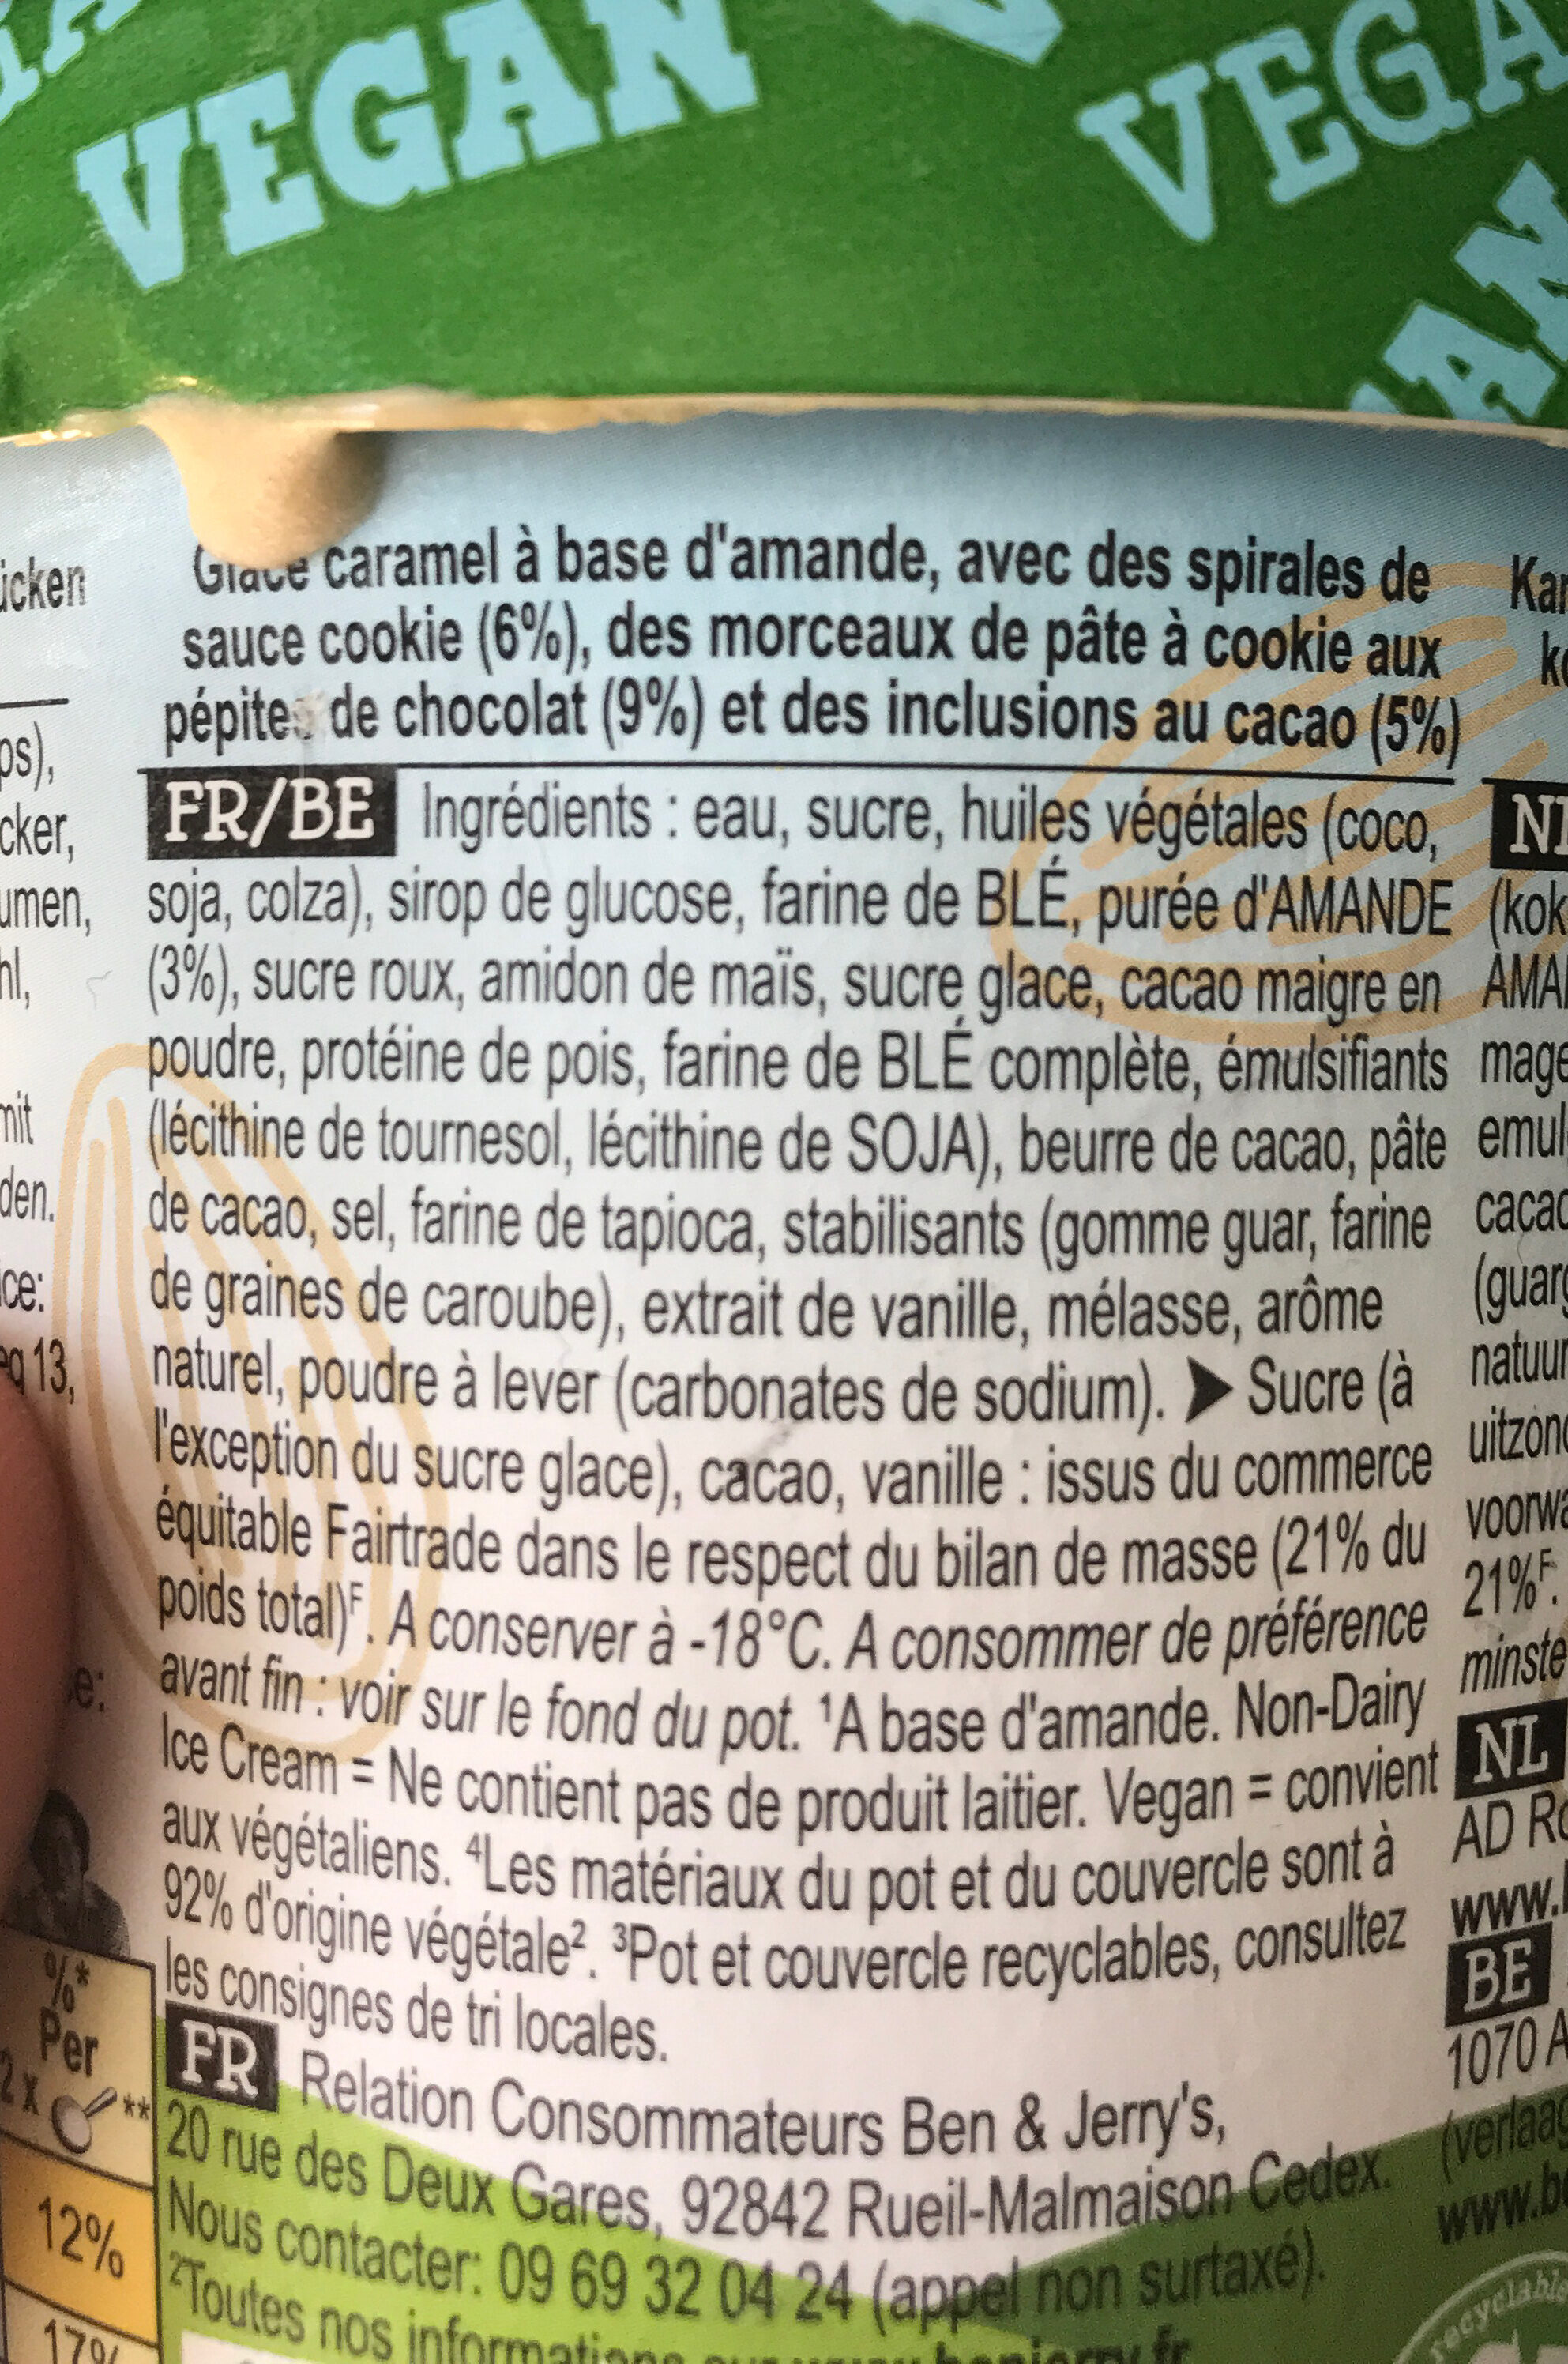 Ben & Jerry's Glace en Pot Vegan Cookies on Cookie Dough - Ingrédients - fr